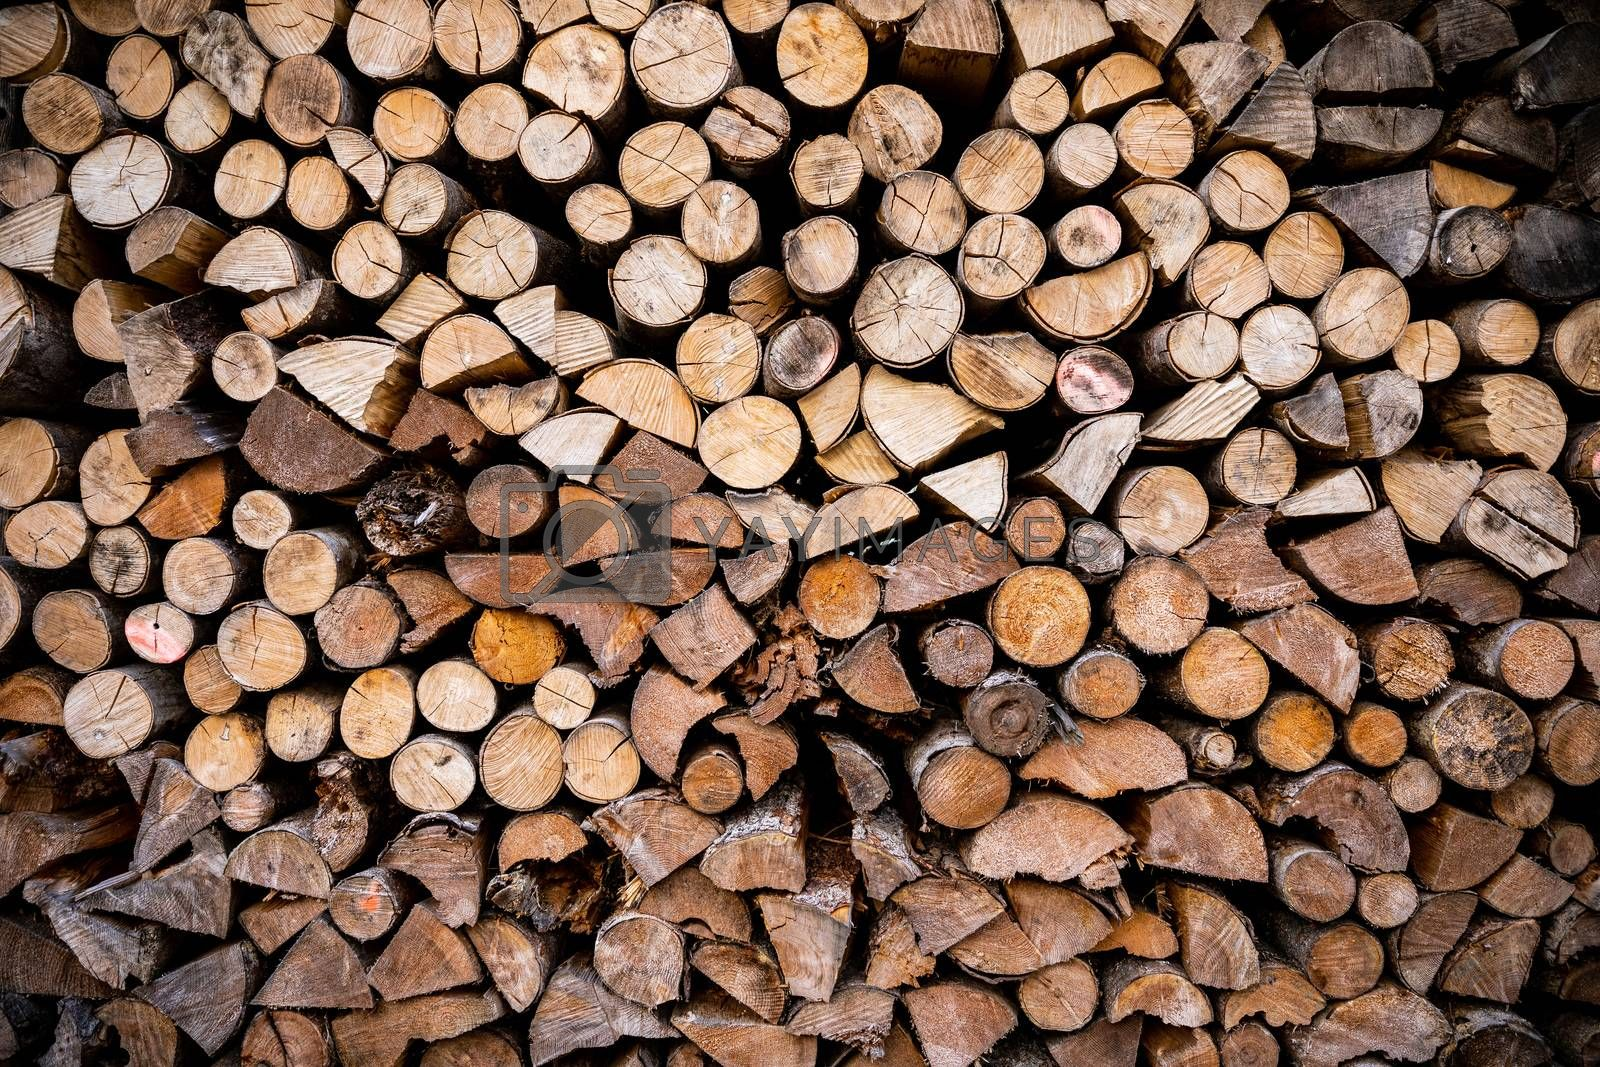 Close focus on cut log woods from softwood trees ready to use as fuel firewood.